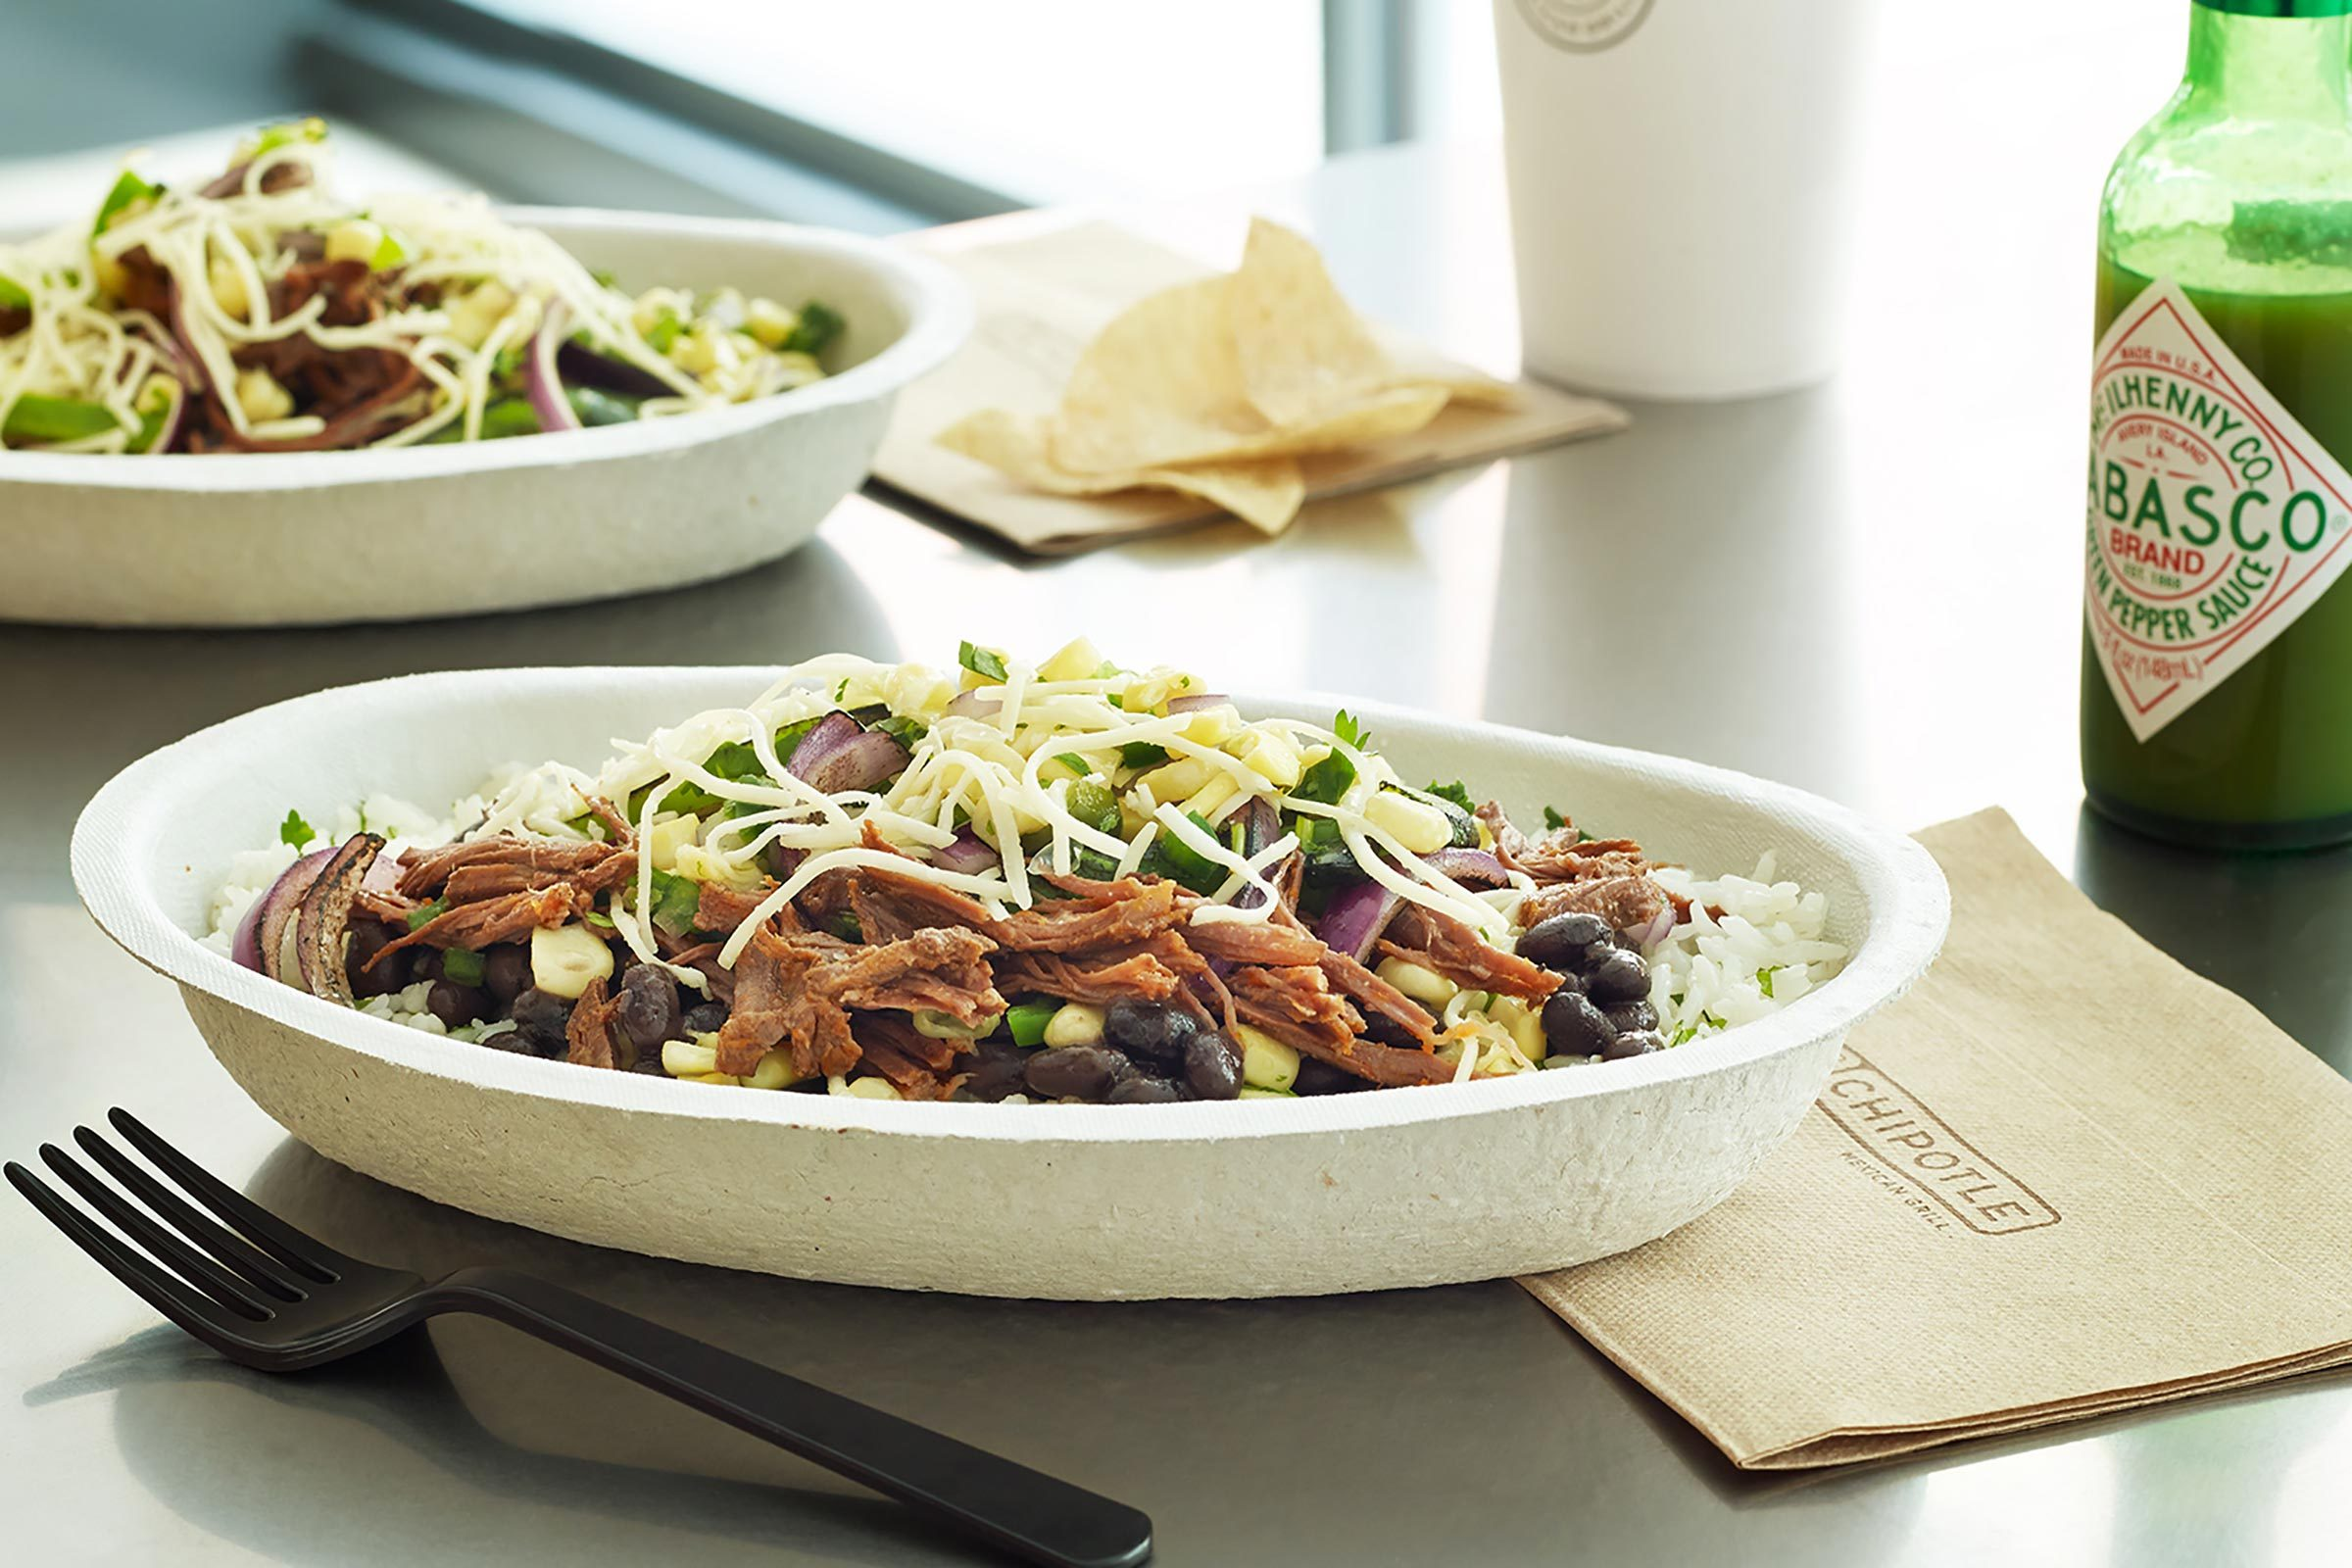 Healthy Options At 10 Fast Food Restaurants The Healthy